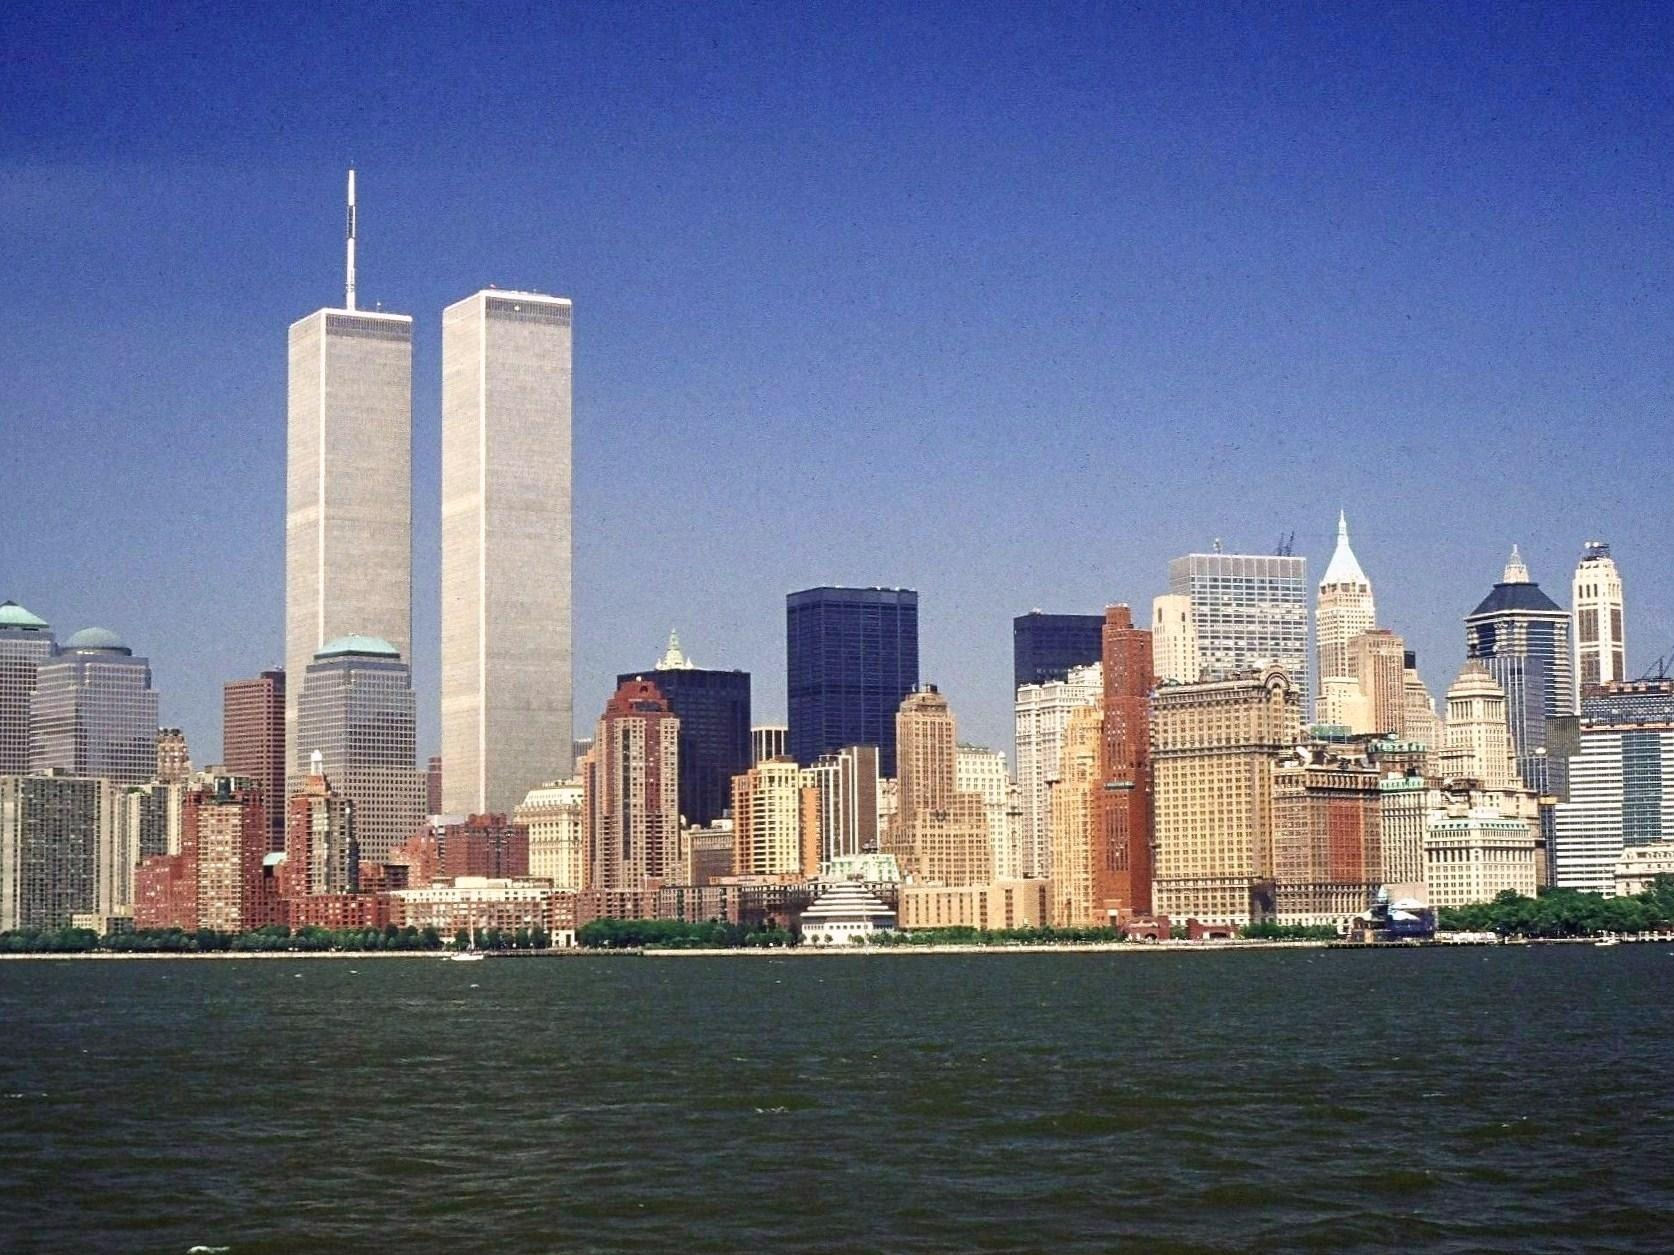 Brisas del Caribe New York City, World Trade Center pictures before during and after 9/11 ...